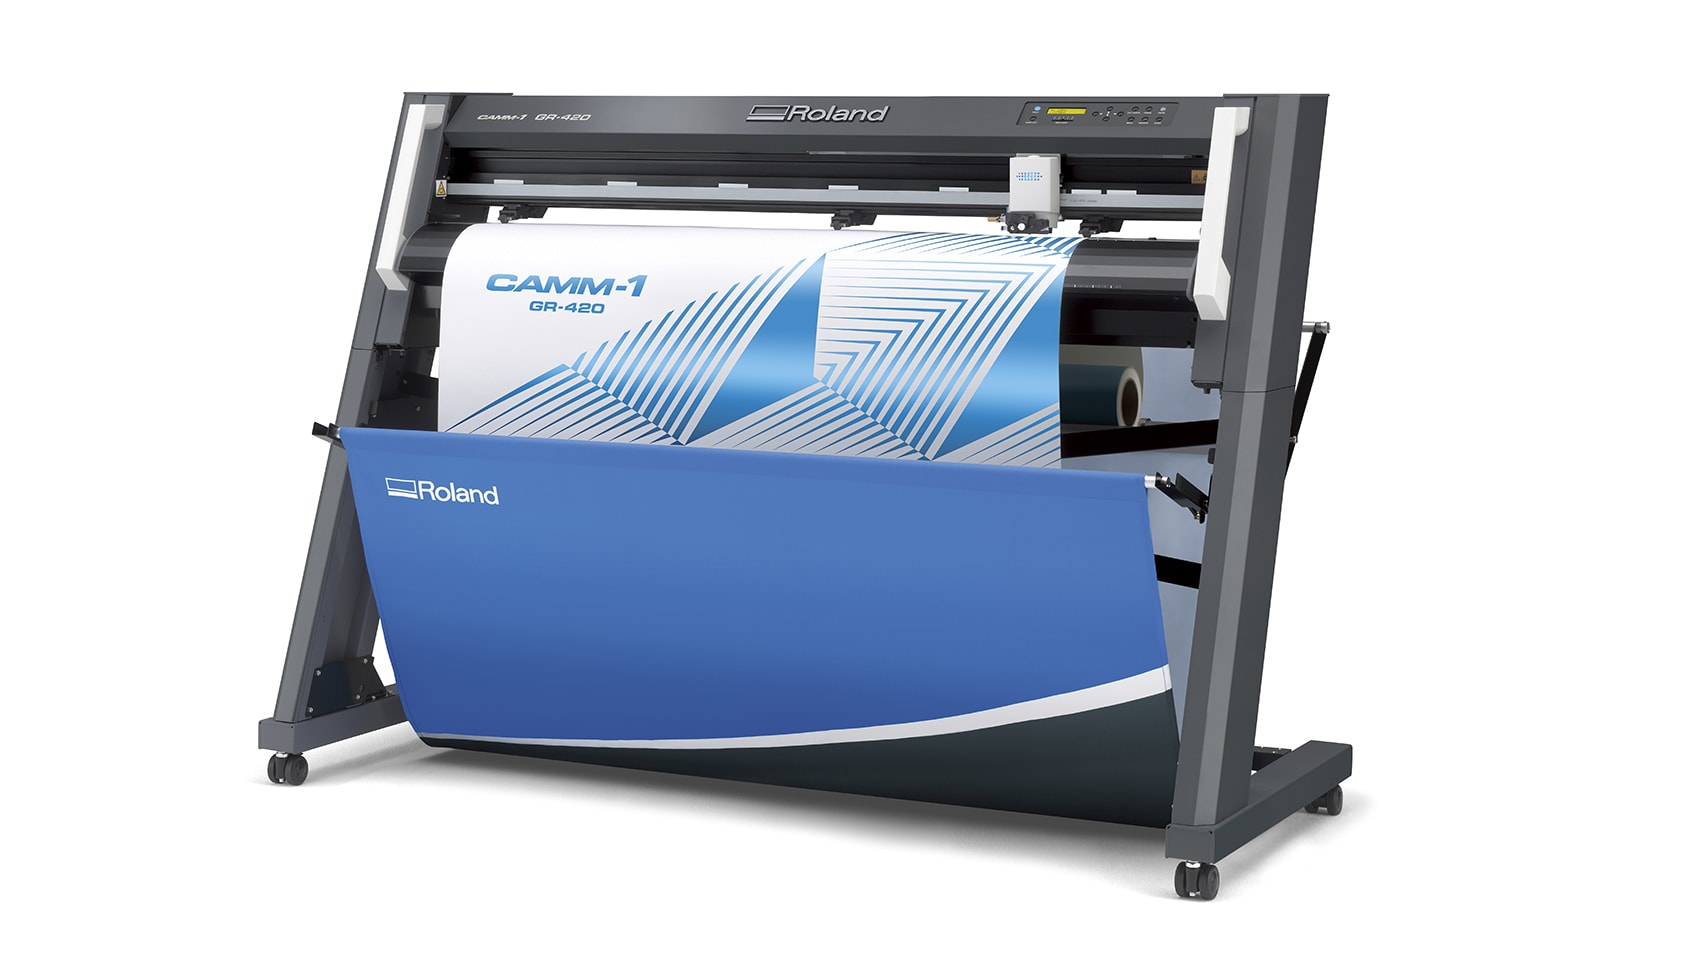 Save up to $4000 on Roland printers and cutters